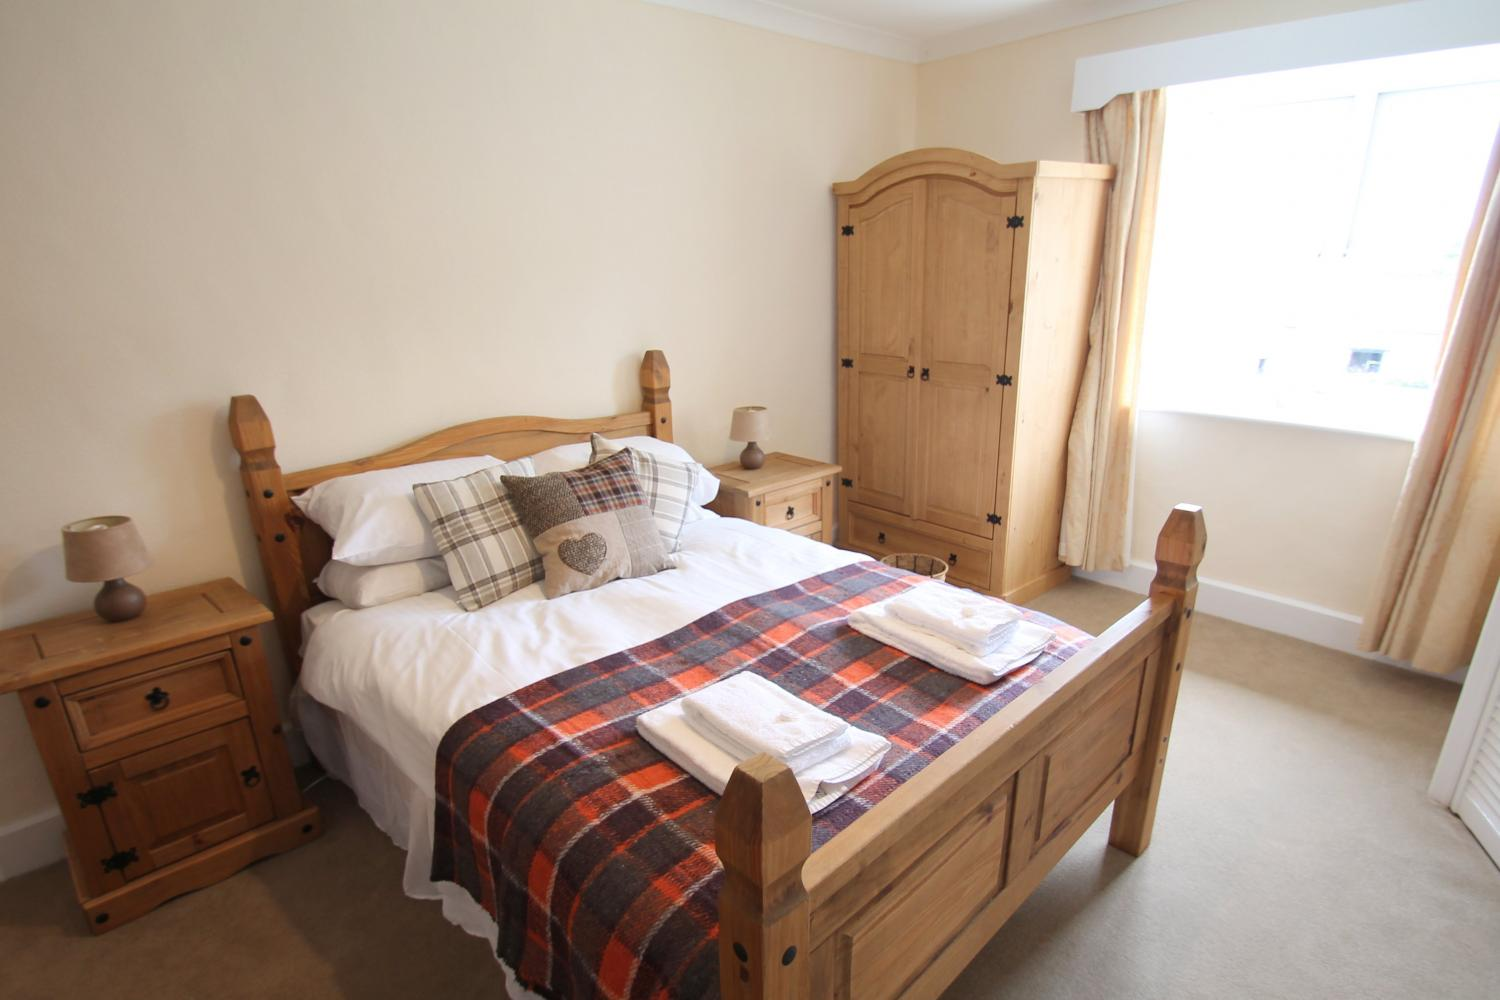 Master bedroom double bedded with ensuite shower and toilet rooms